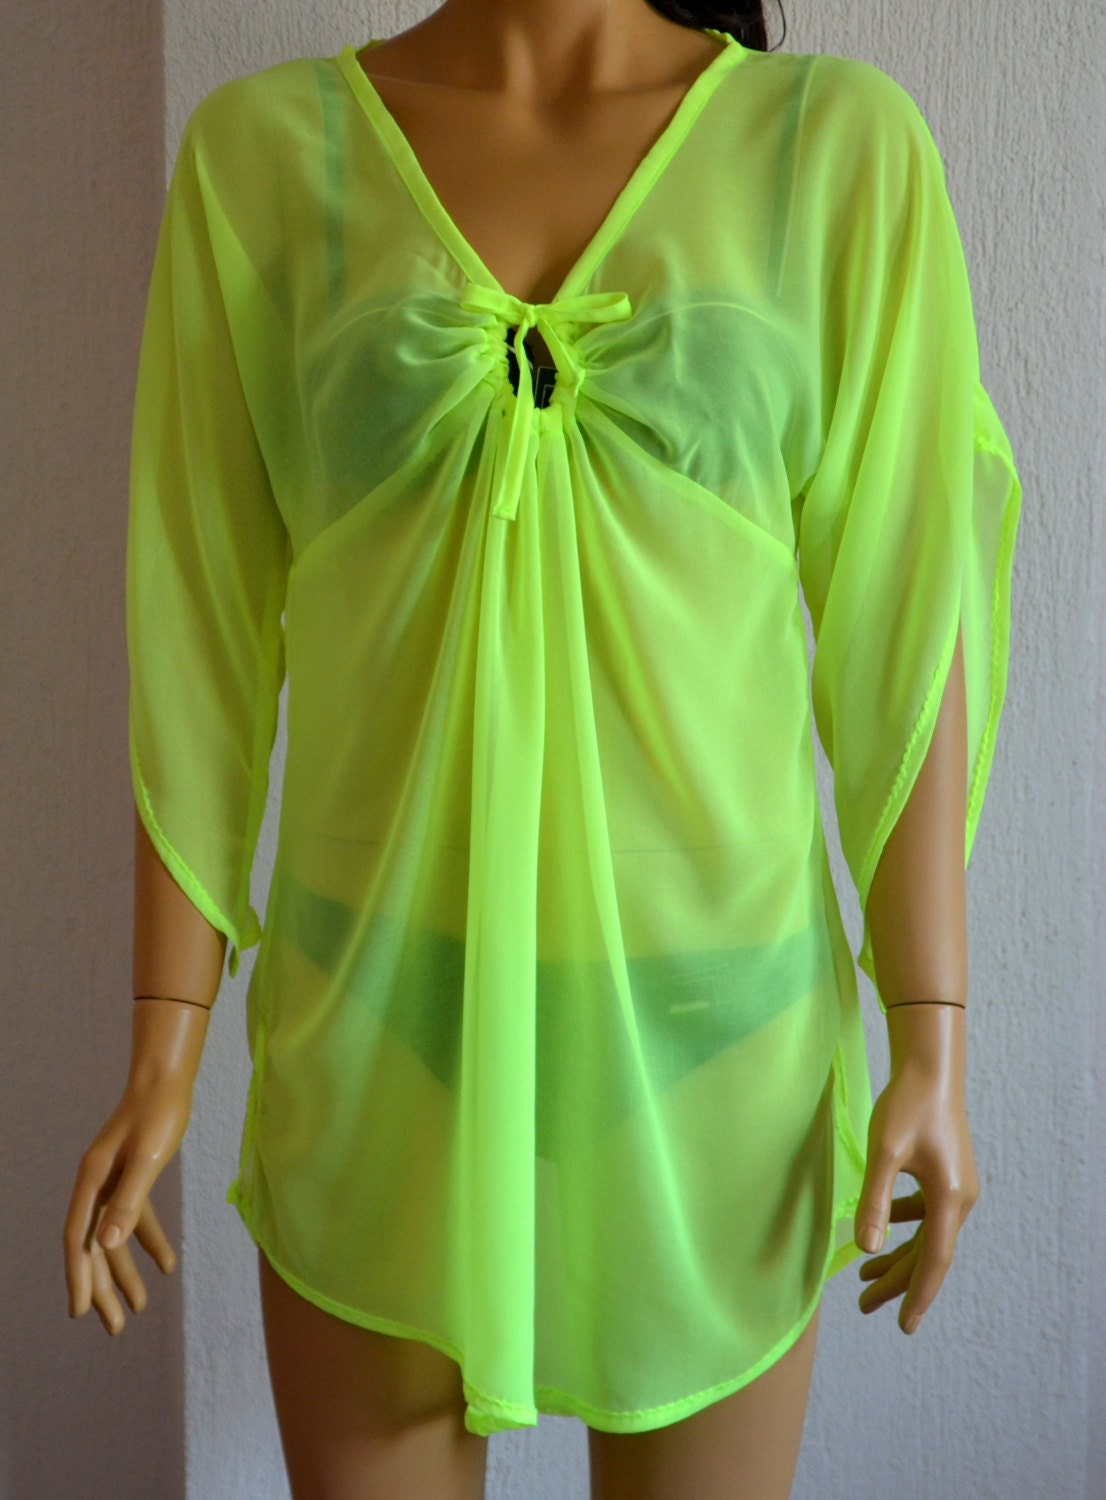 Neon Green Chiffon Caftan Beach Cover Up Summer Dress Boho